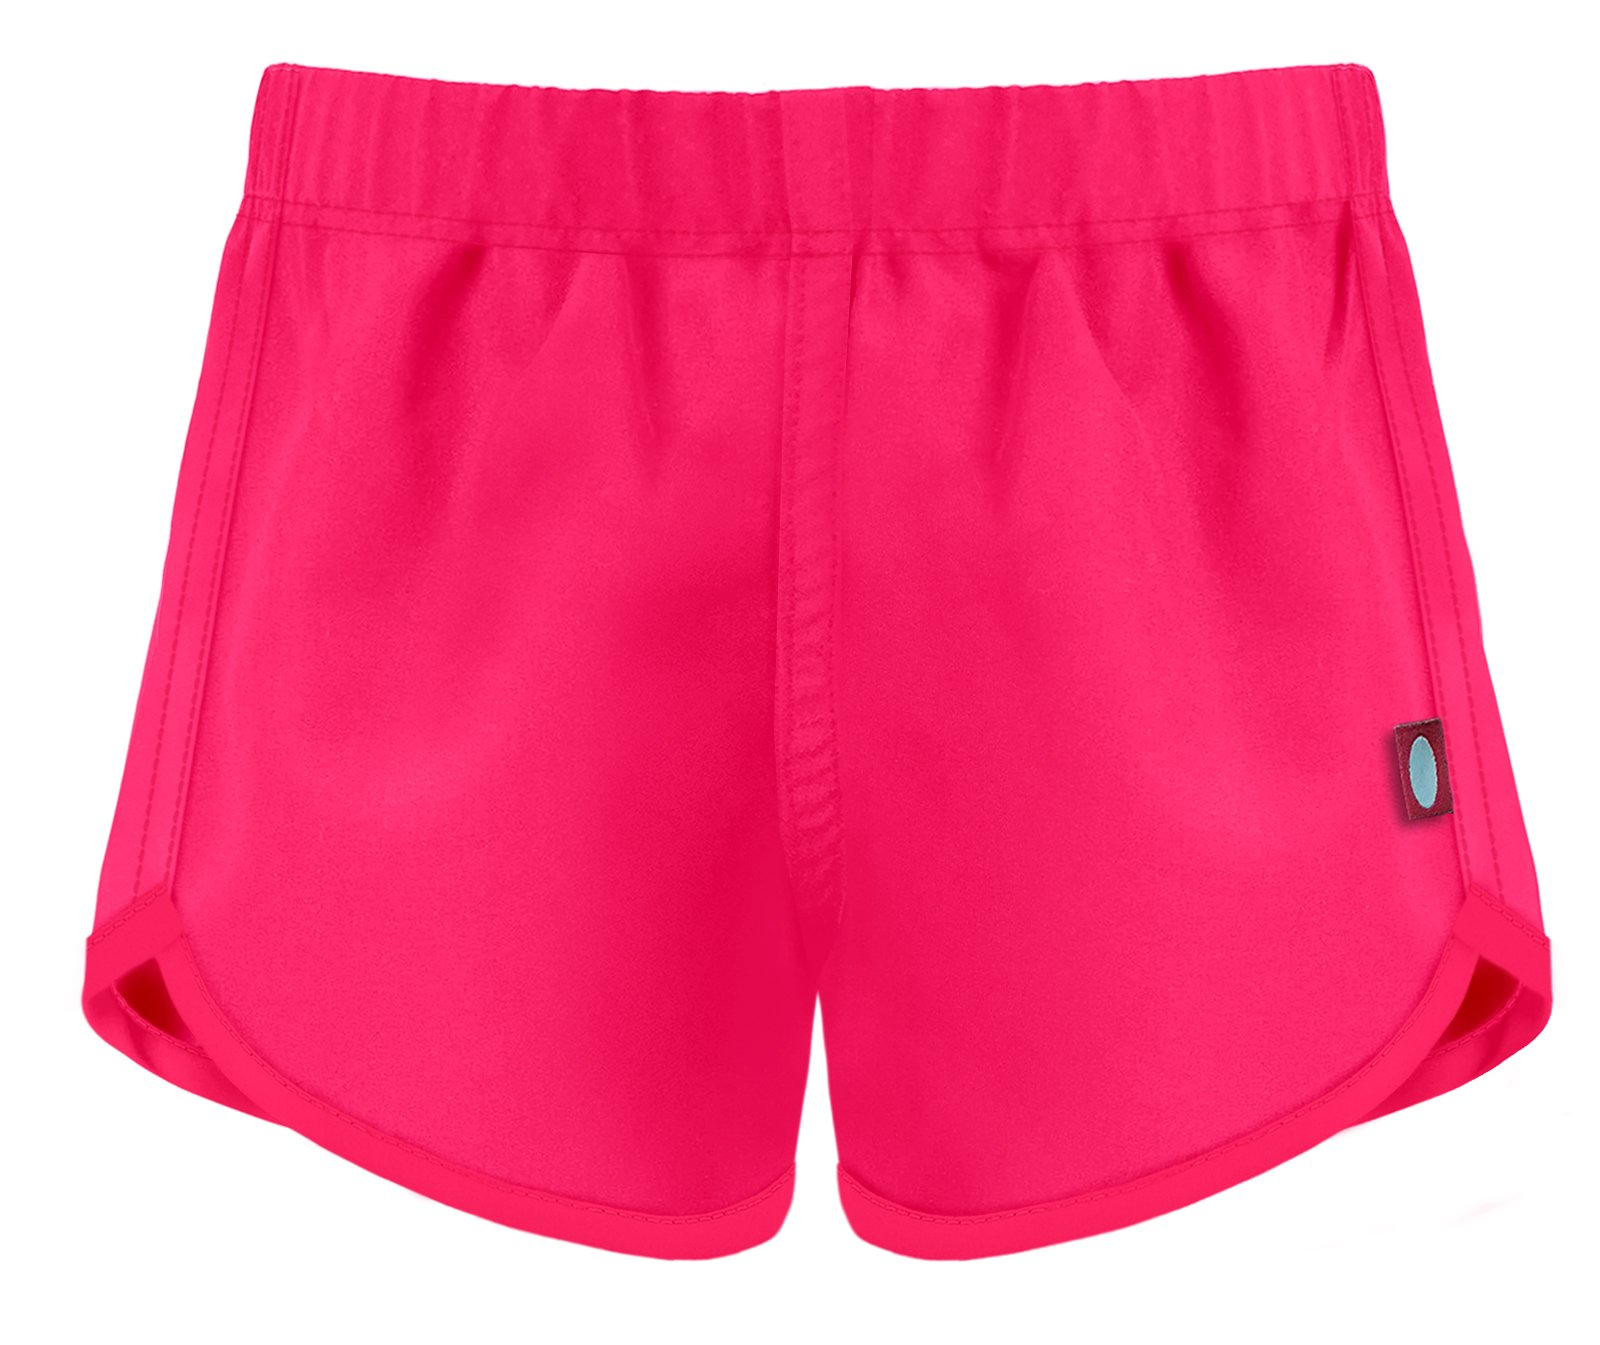 City Threads Girls' Swimming Suit Bottom Board Short, Hot Pink, 5